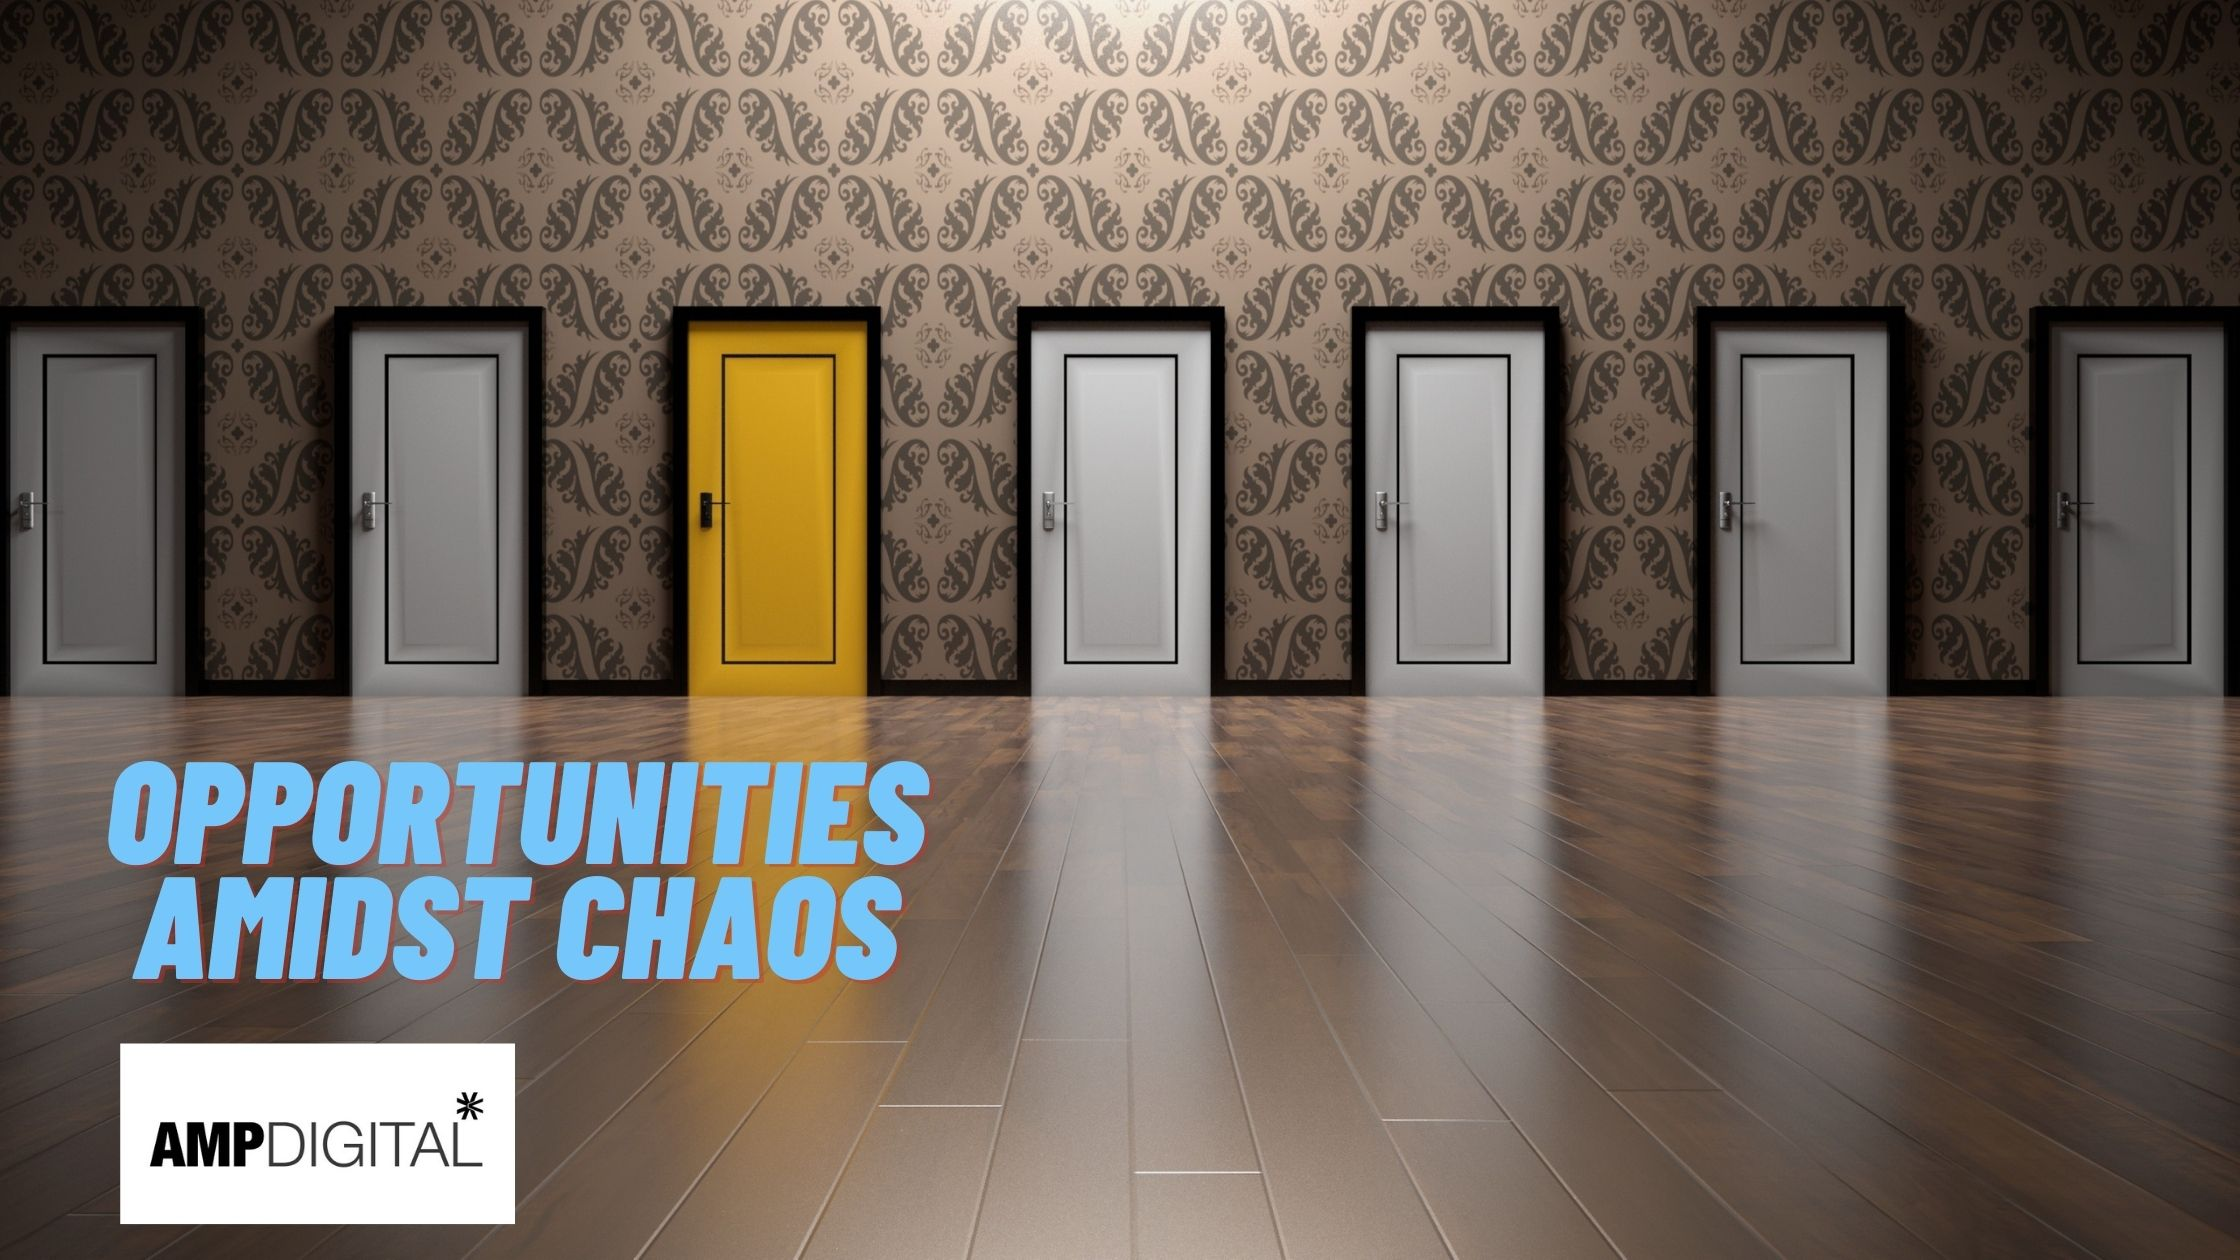 Opportunities amidst chaos